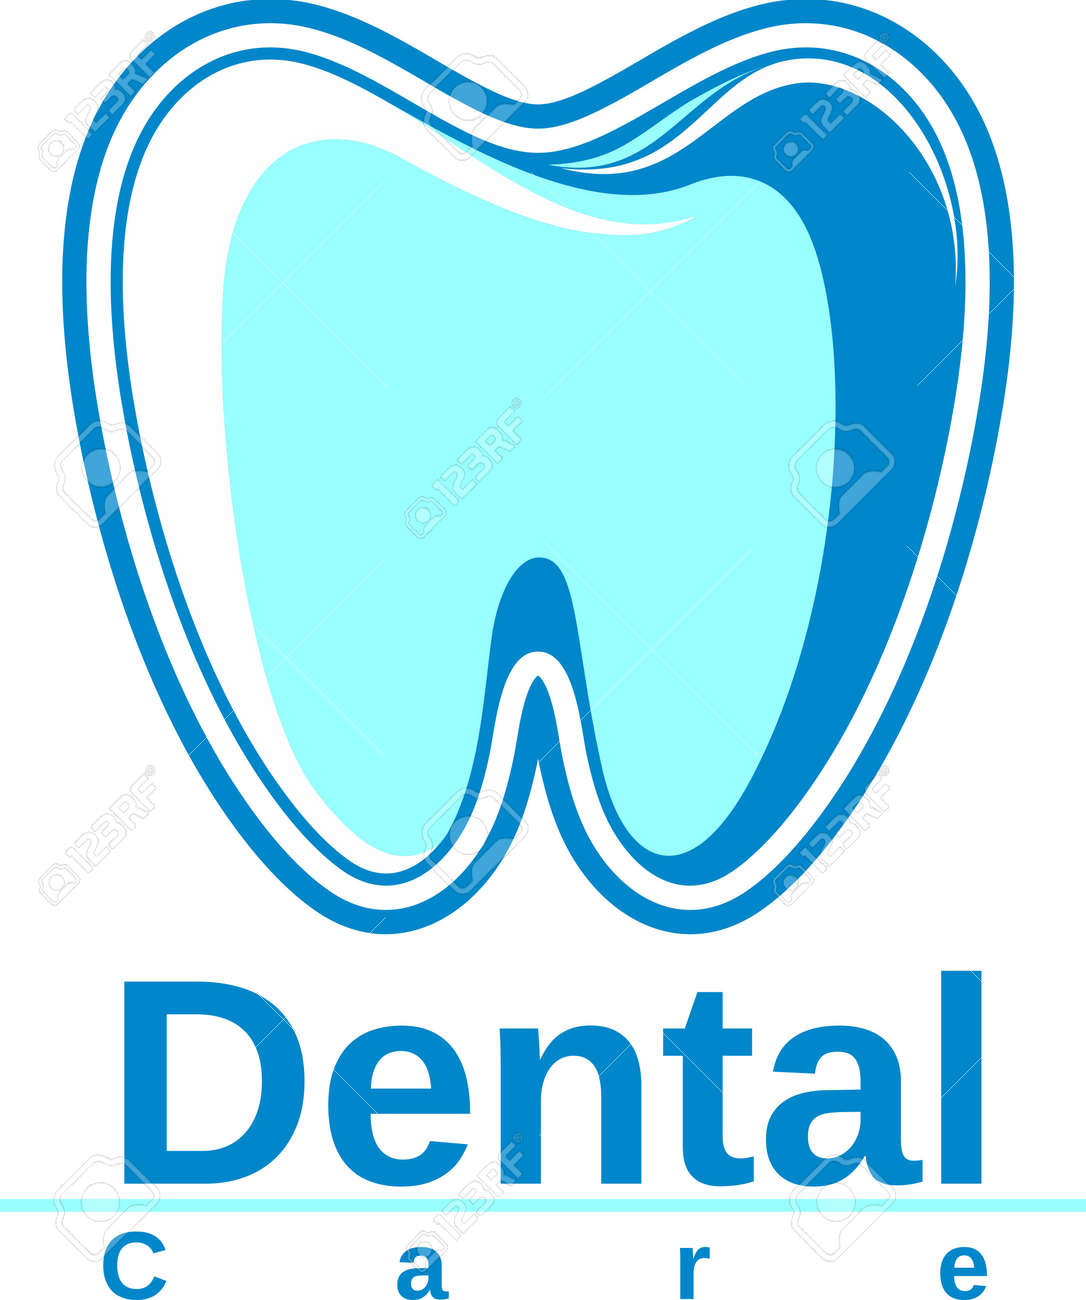 Dental Logo Design Royalty Free Cliparts, Vectors, And Stock ...